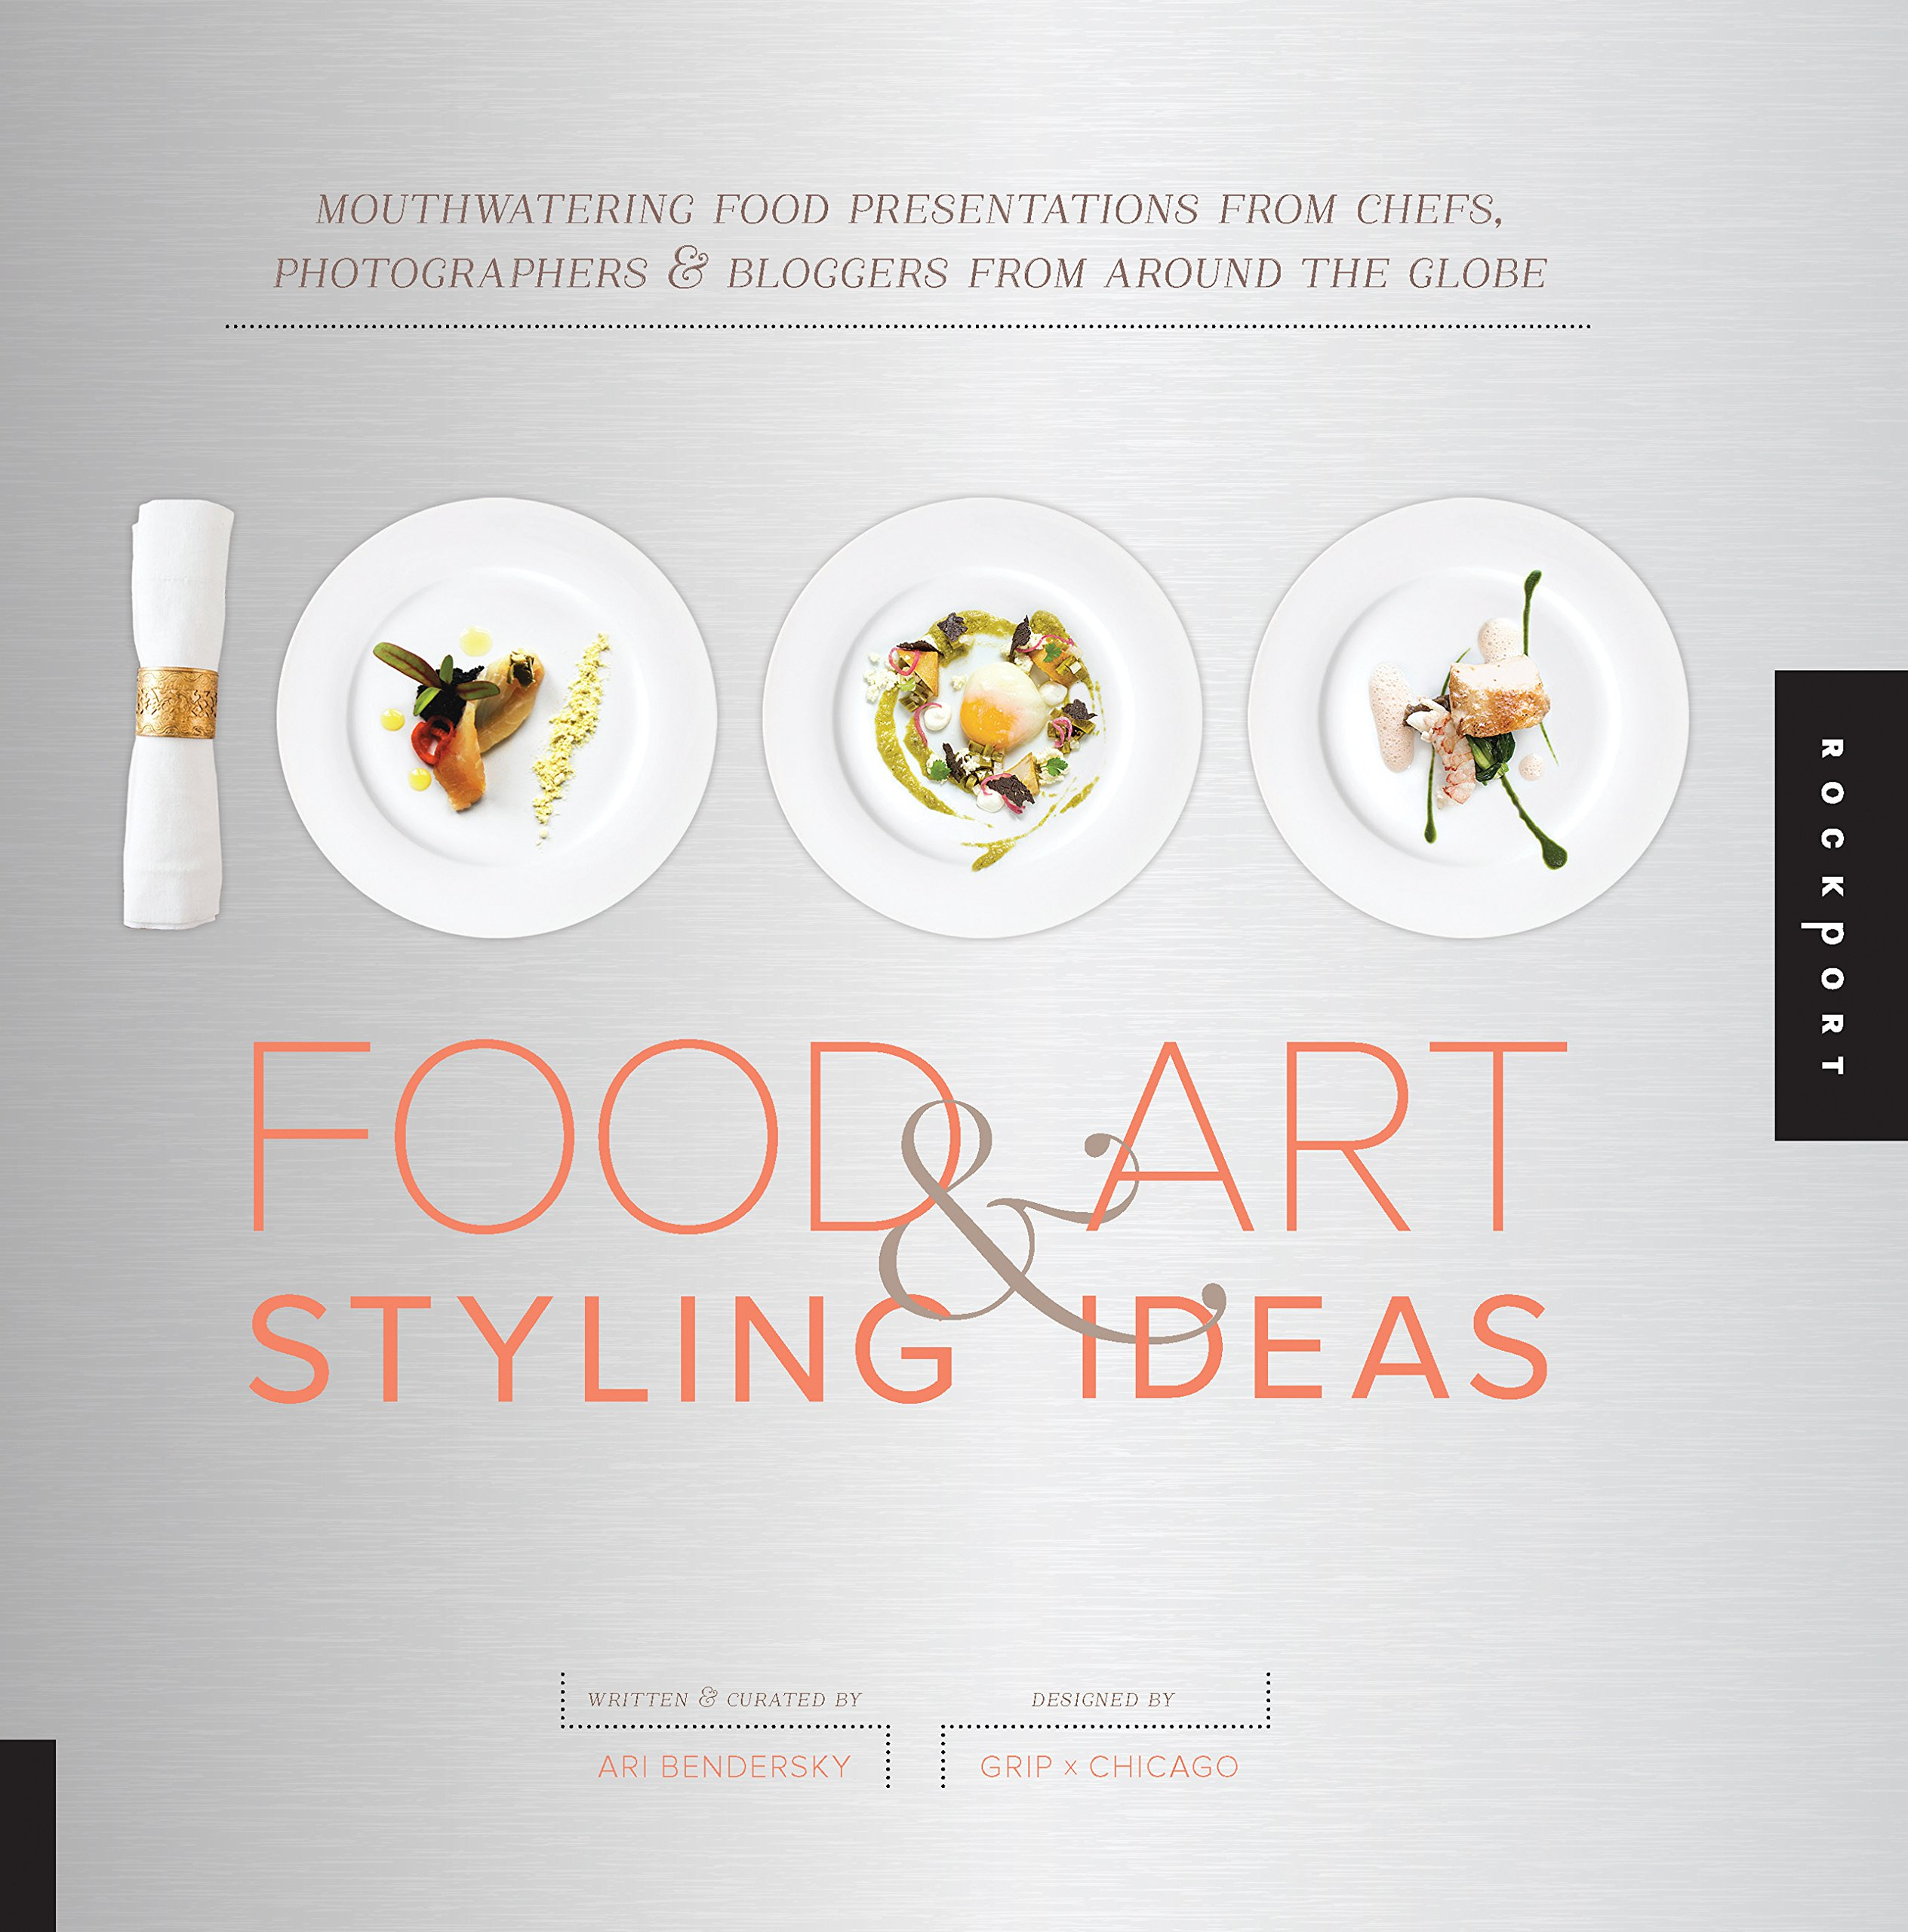 Amazon com: 1,000 Food Art and Styling Ideas: Mouthwatering